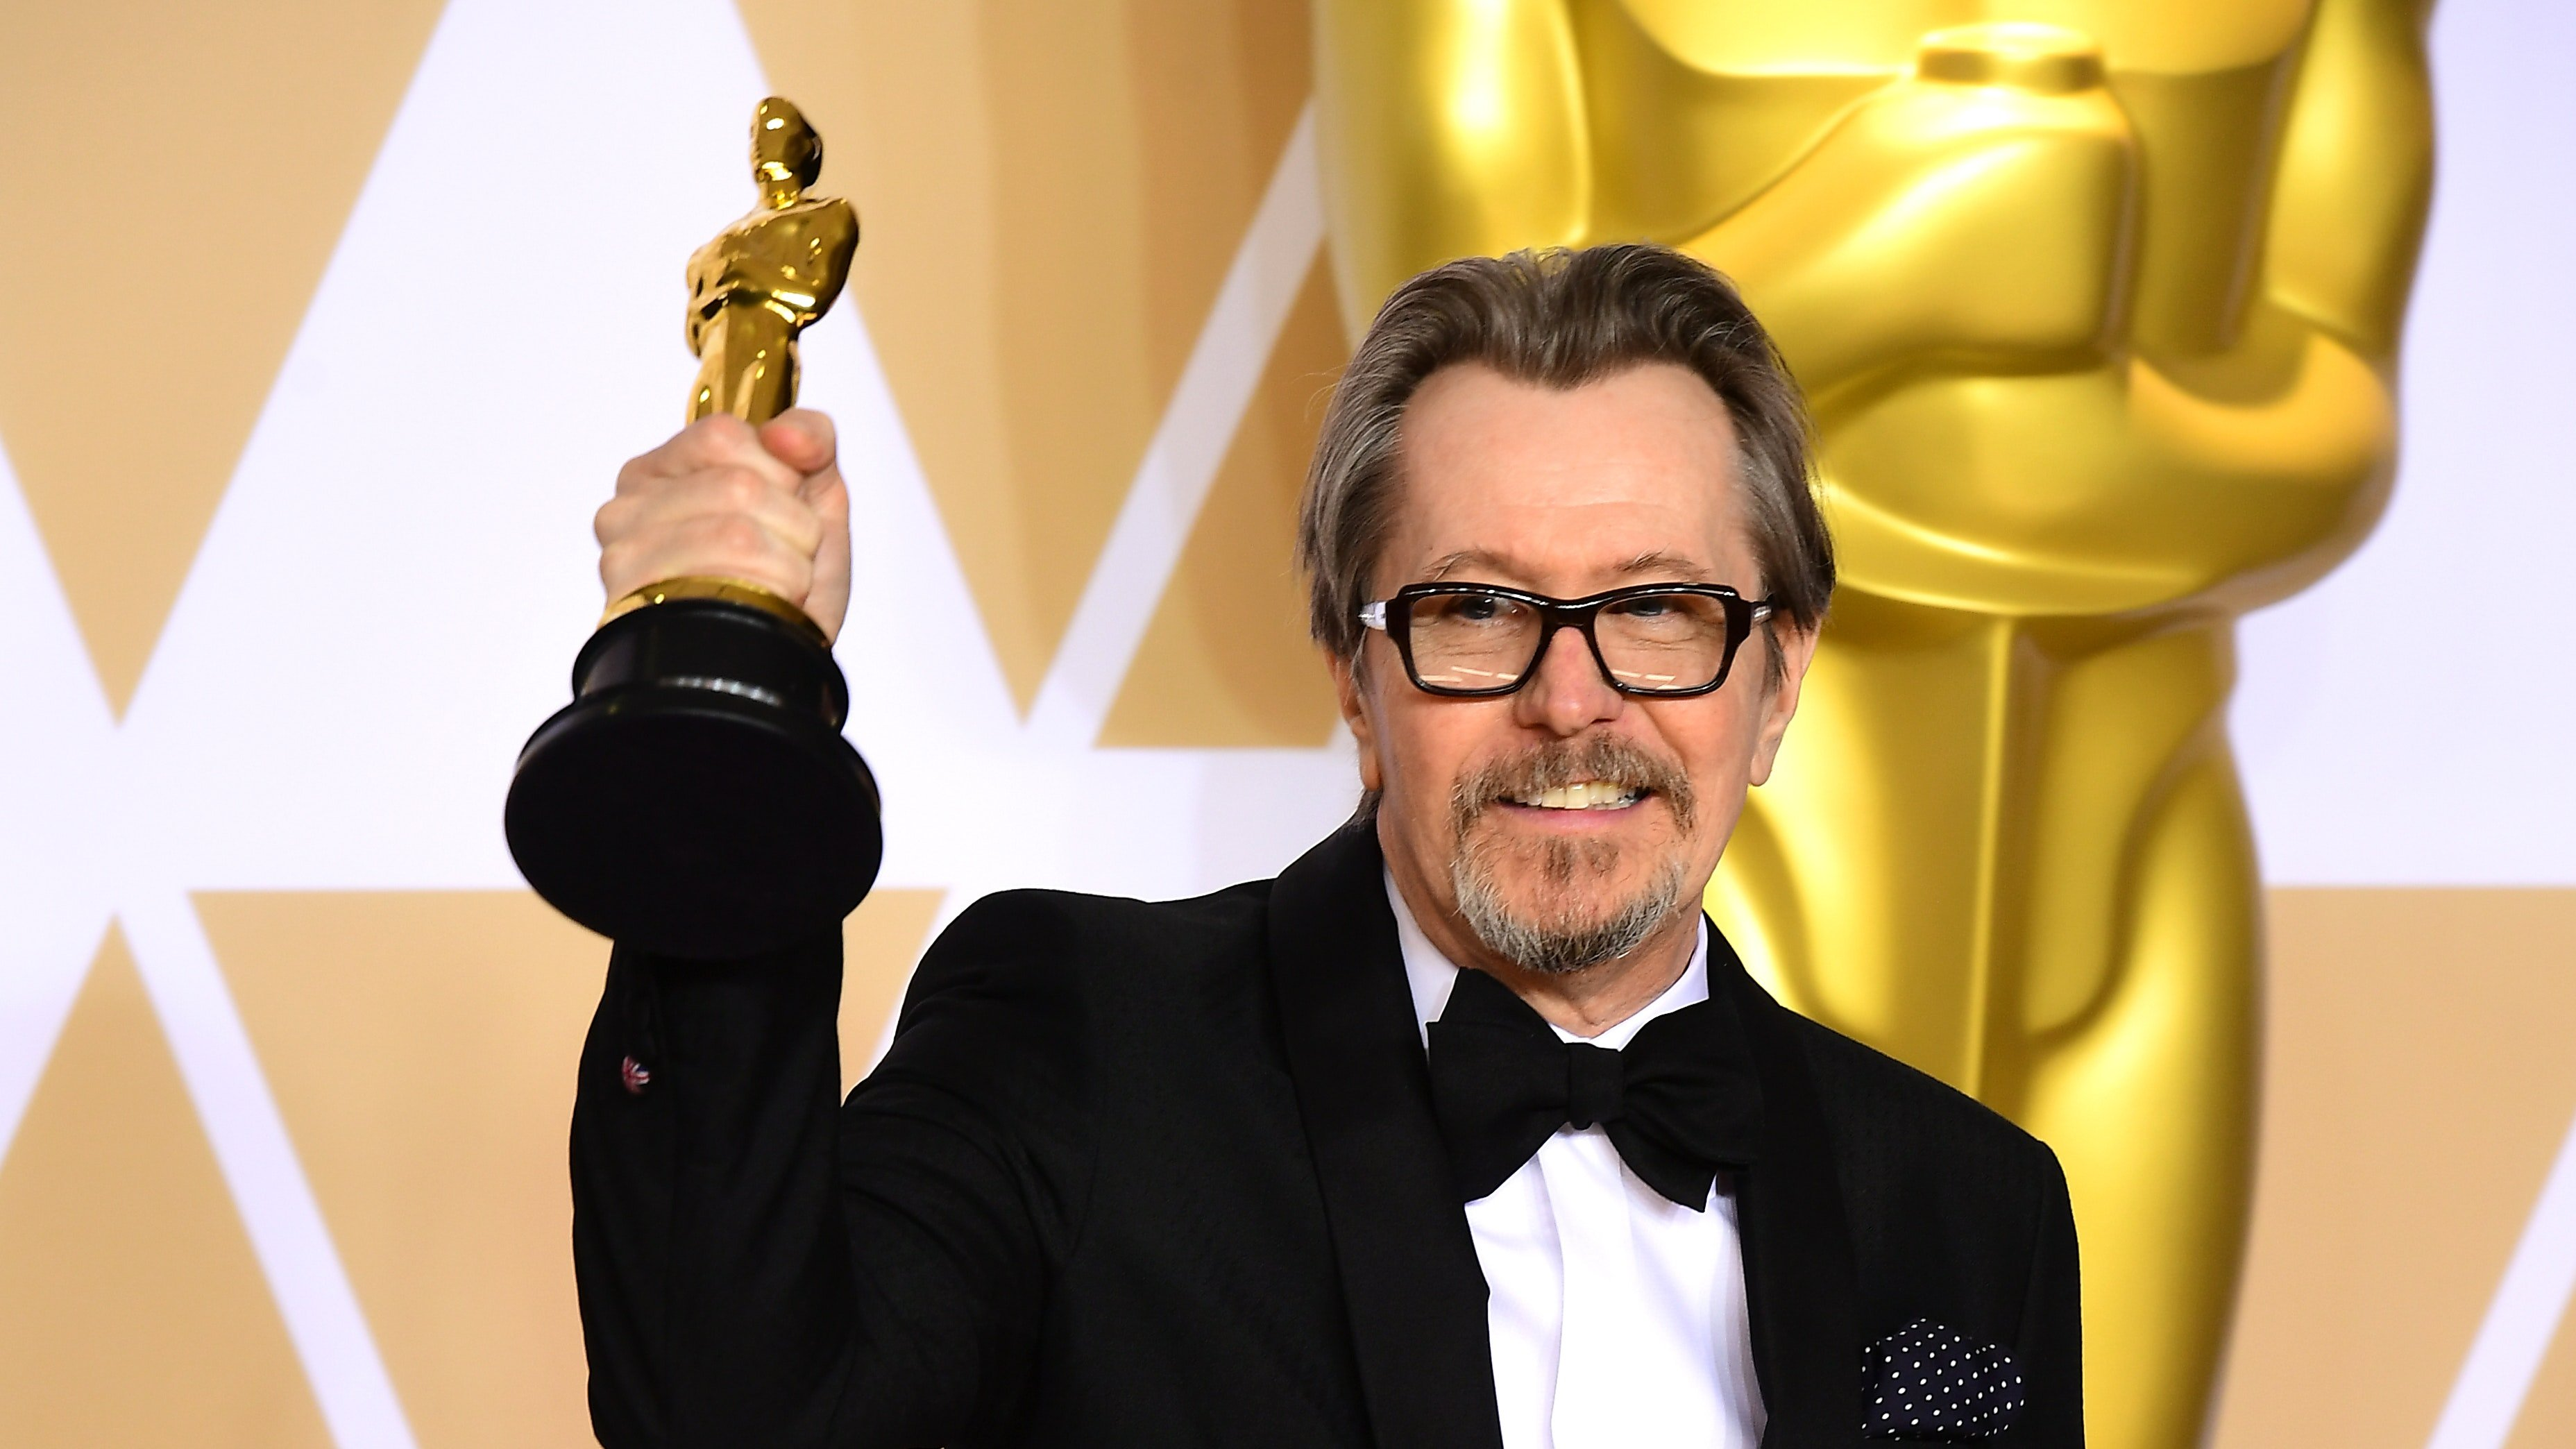 """Gary Oldman won Best Actor at the Academy Awards. But for some entertainment fans, the 59-year-old actor's win marks the """"Darkest Hour"""" of the #metoo era. WATCH:  Social media users are resurrecting allegations from Oldman's ex-wife in 2001.The Daily Beast reportedthat she said Oldman hit her """"in the face with the telephone receiver three …"""